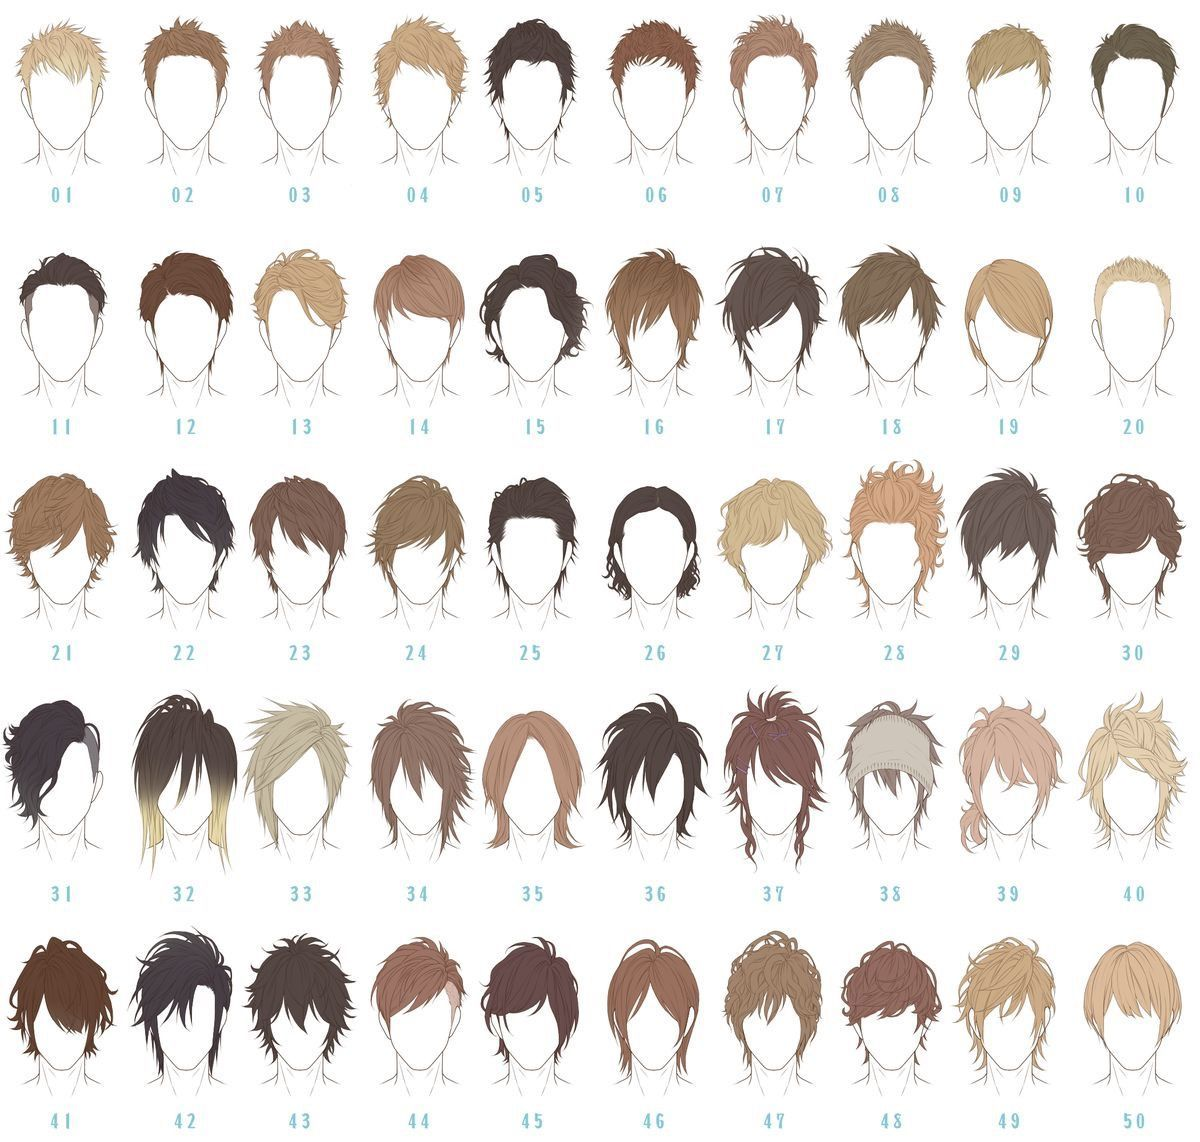 Drawing Short Hairs Anime Boy Hair Manga Hair Anime Hairstyles Male